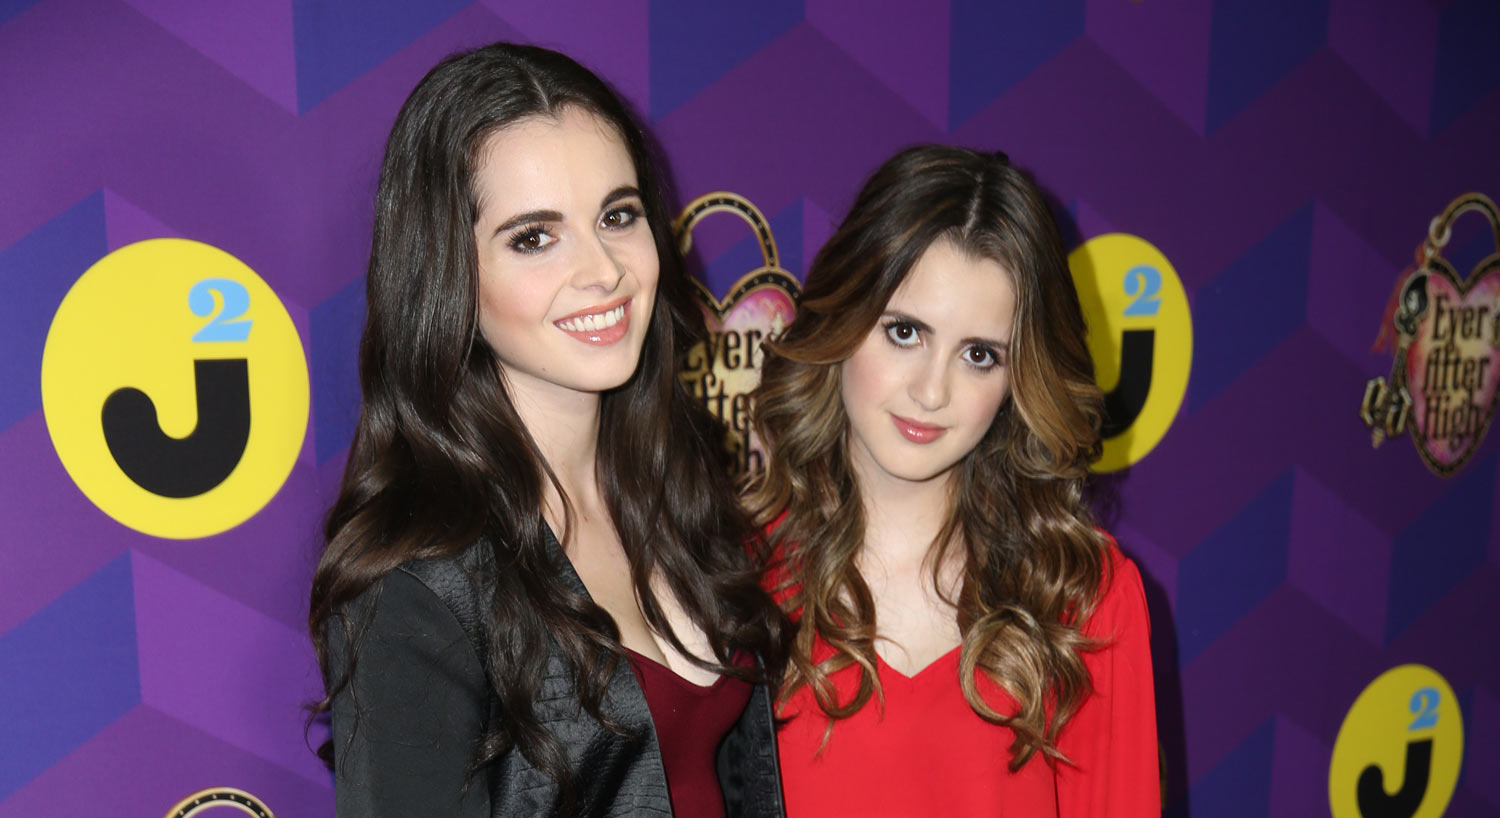 Vanessa laura marano make it to wonderland at just jared s party presented by ever after high